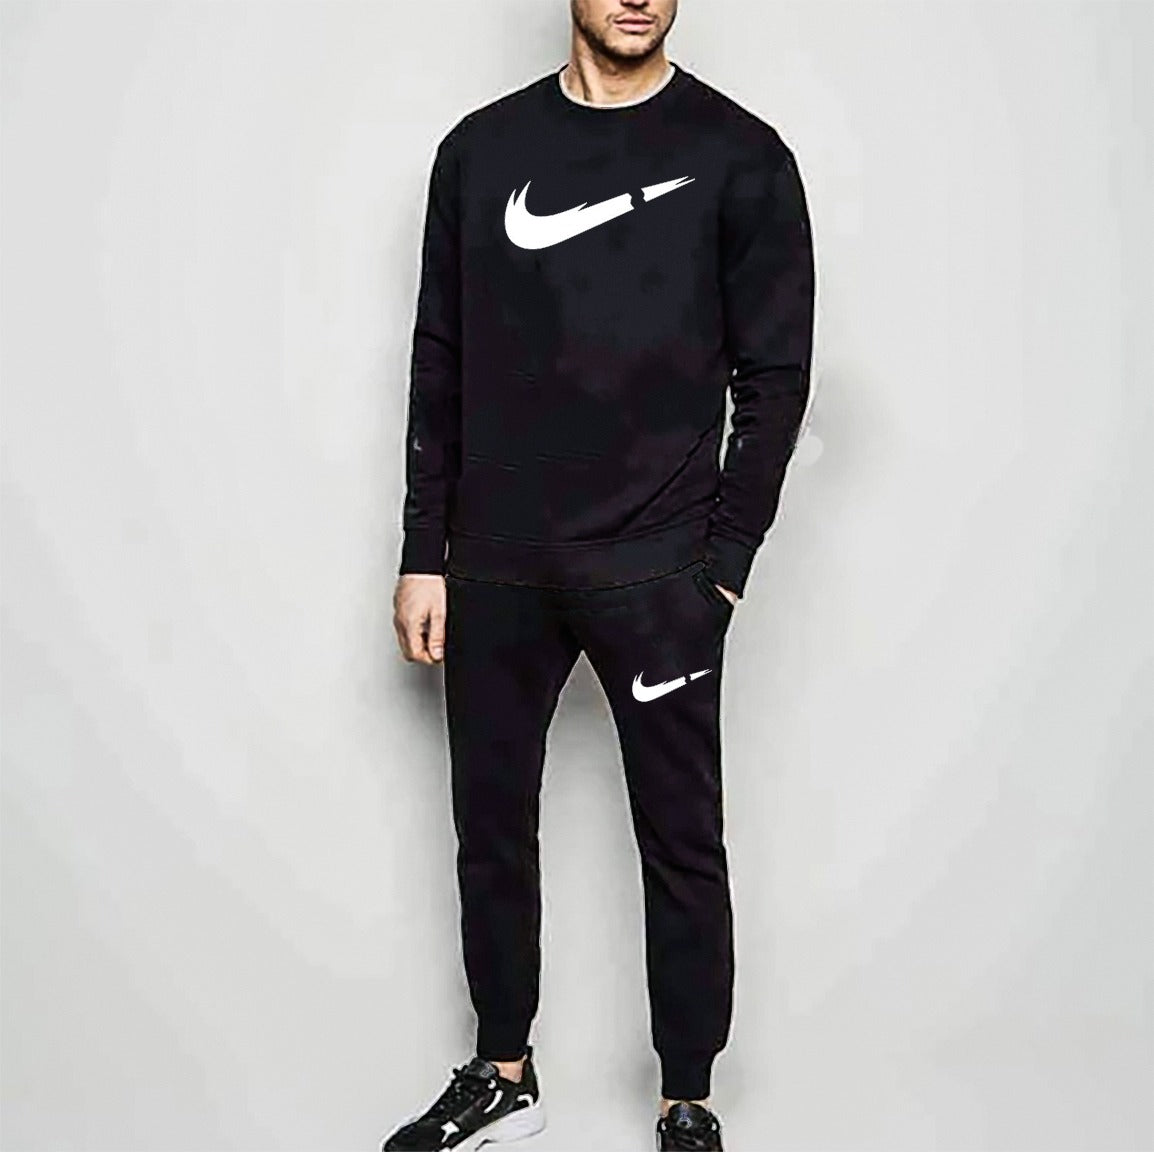 Black Summer Cut Nike Printed Tracksuit